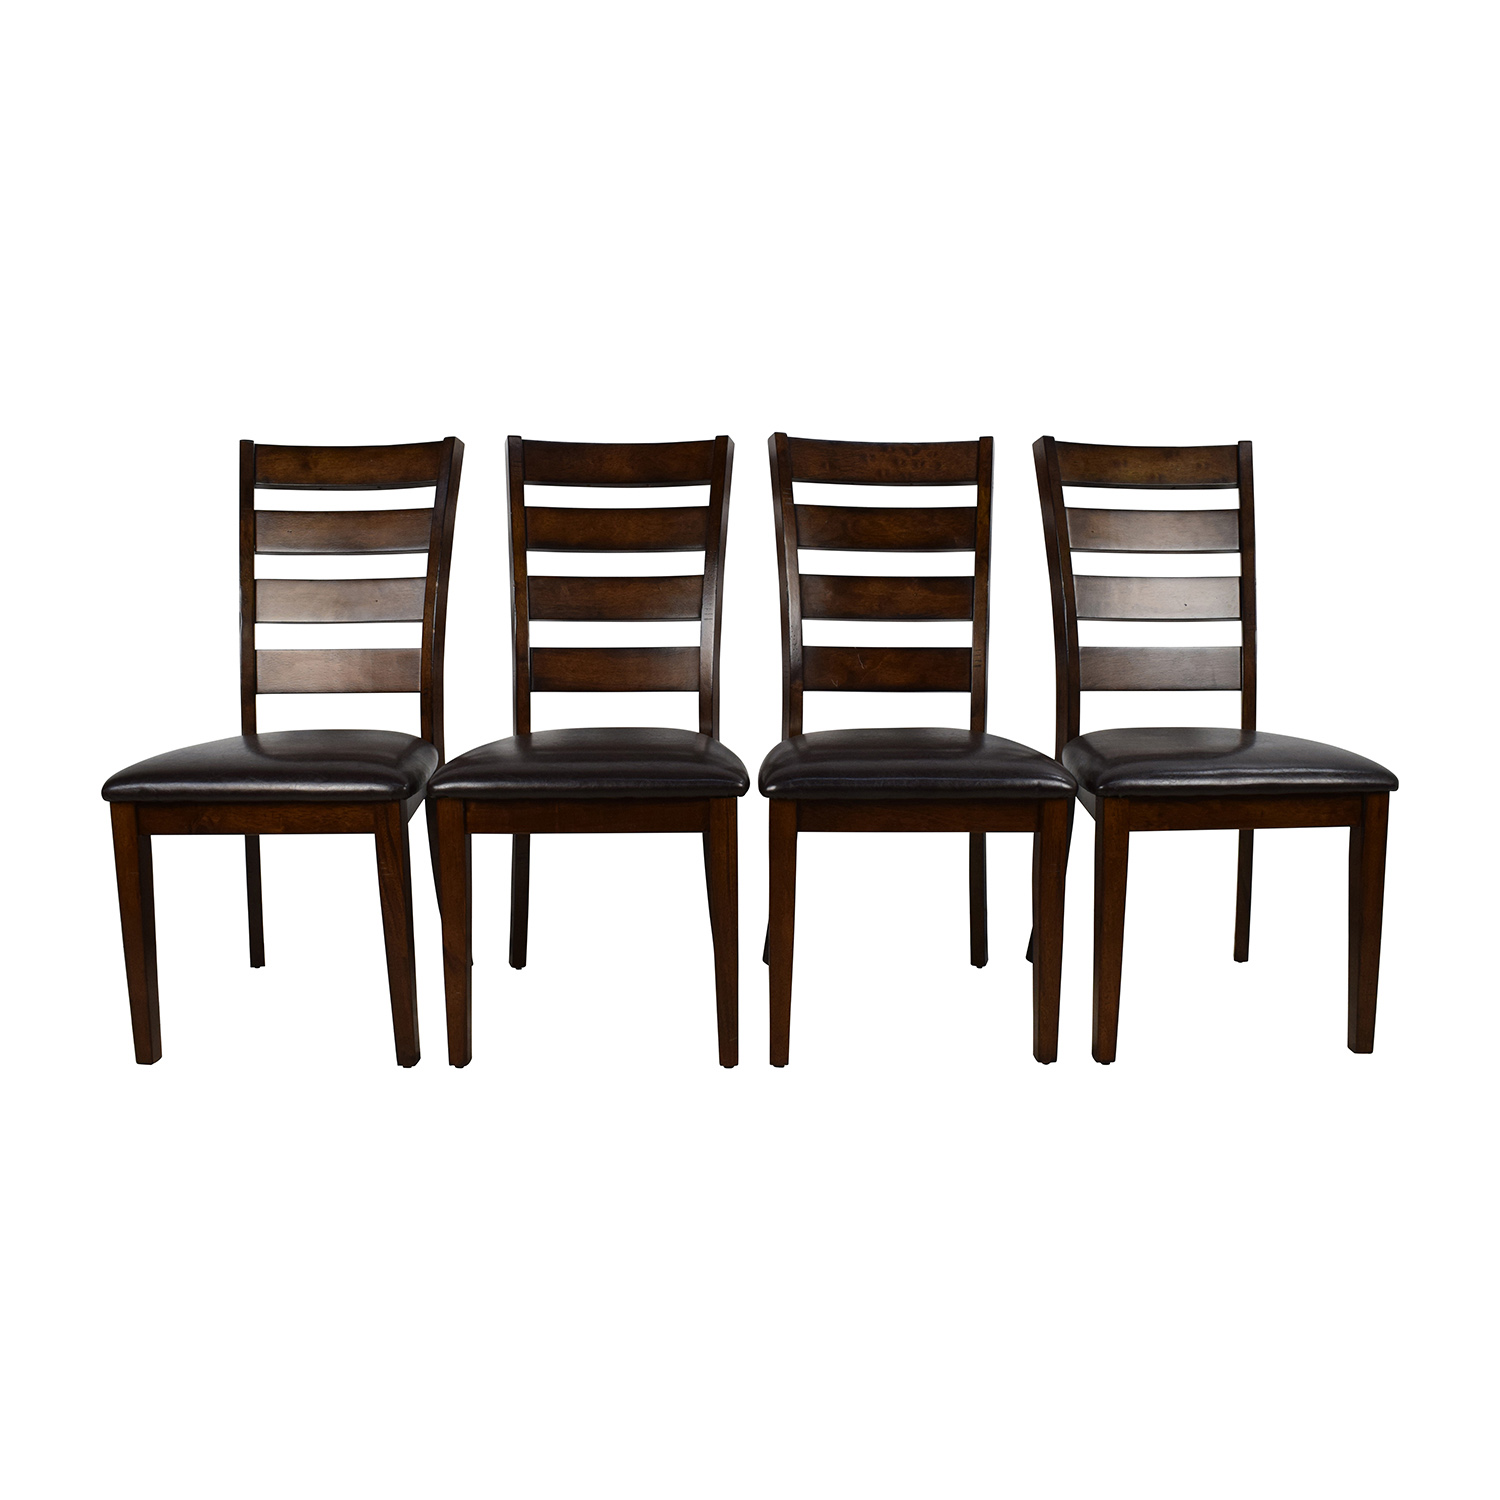 raymour and flanigan chairs chair rental miami 62 off kona dining